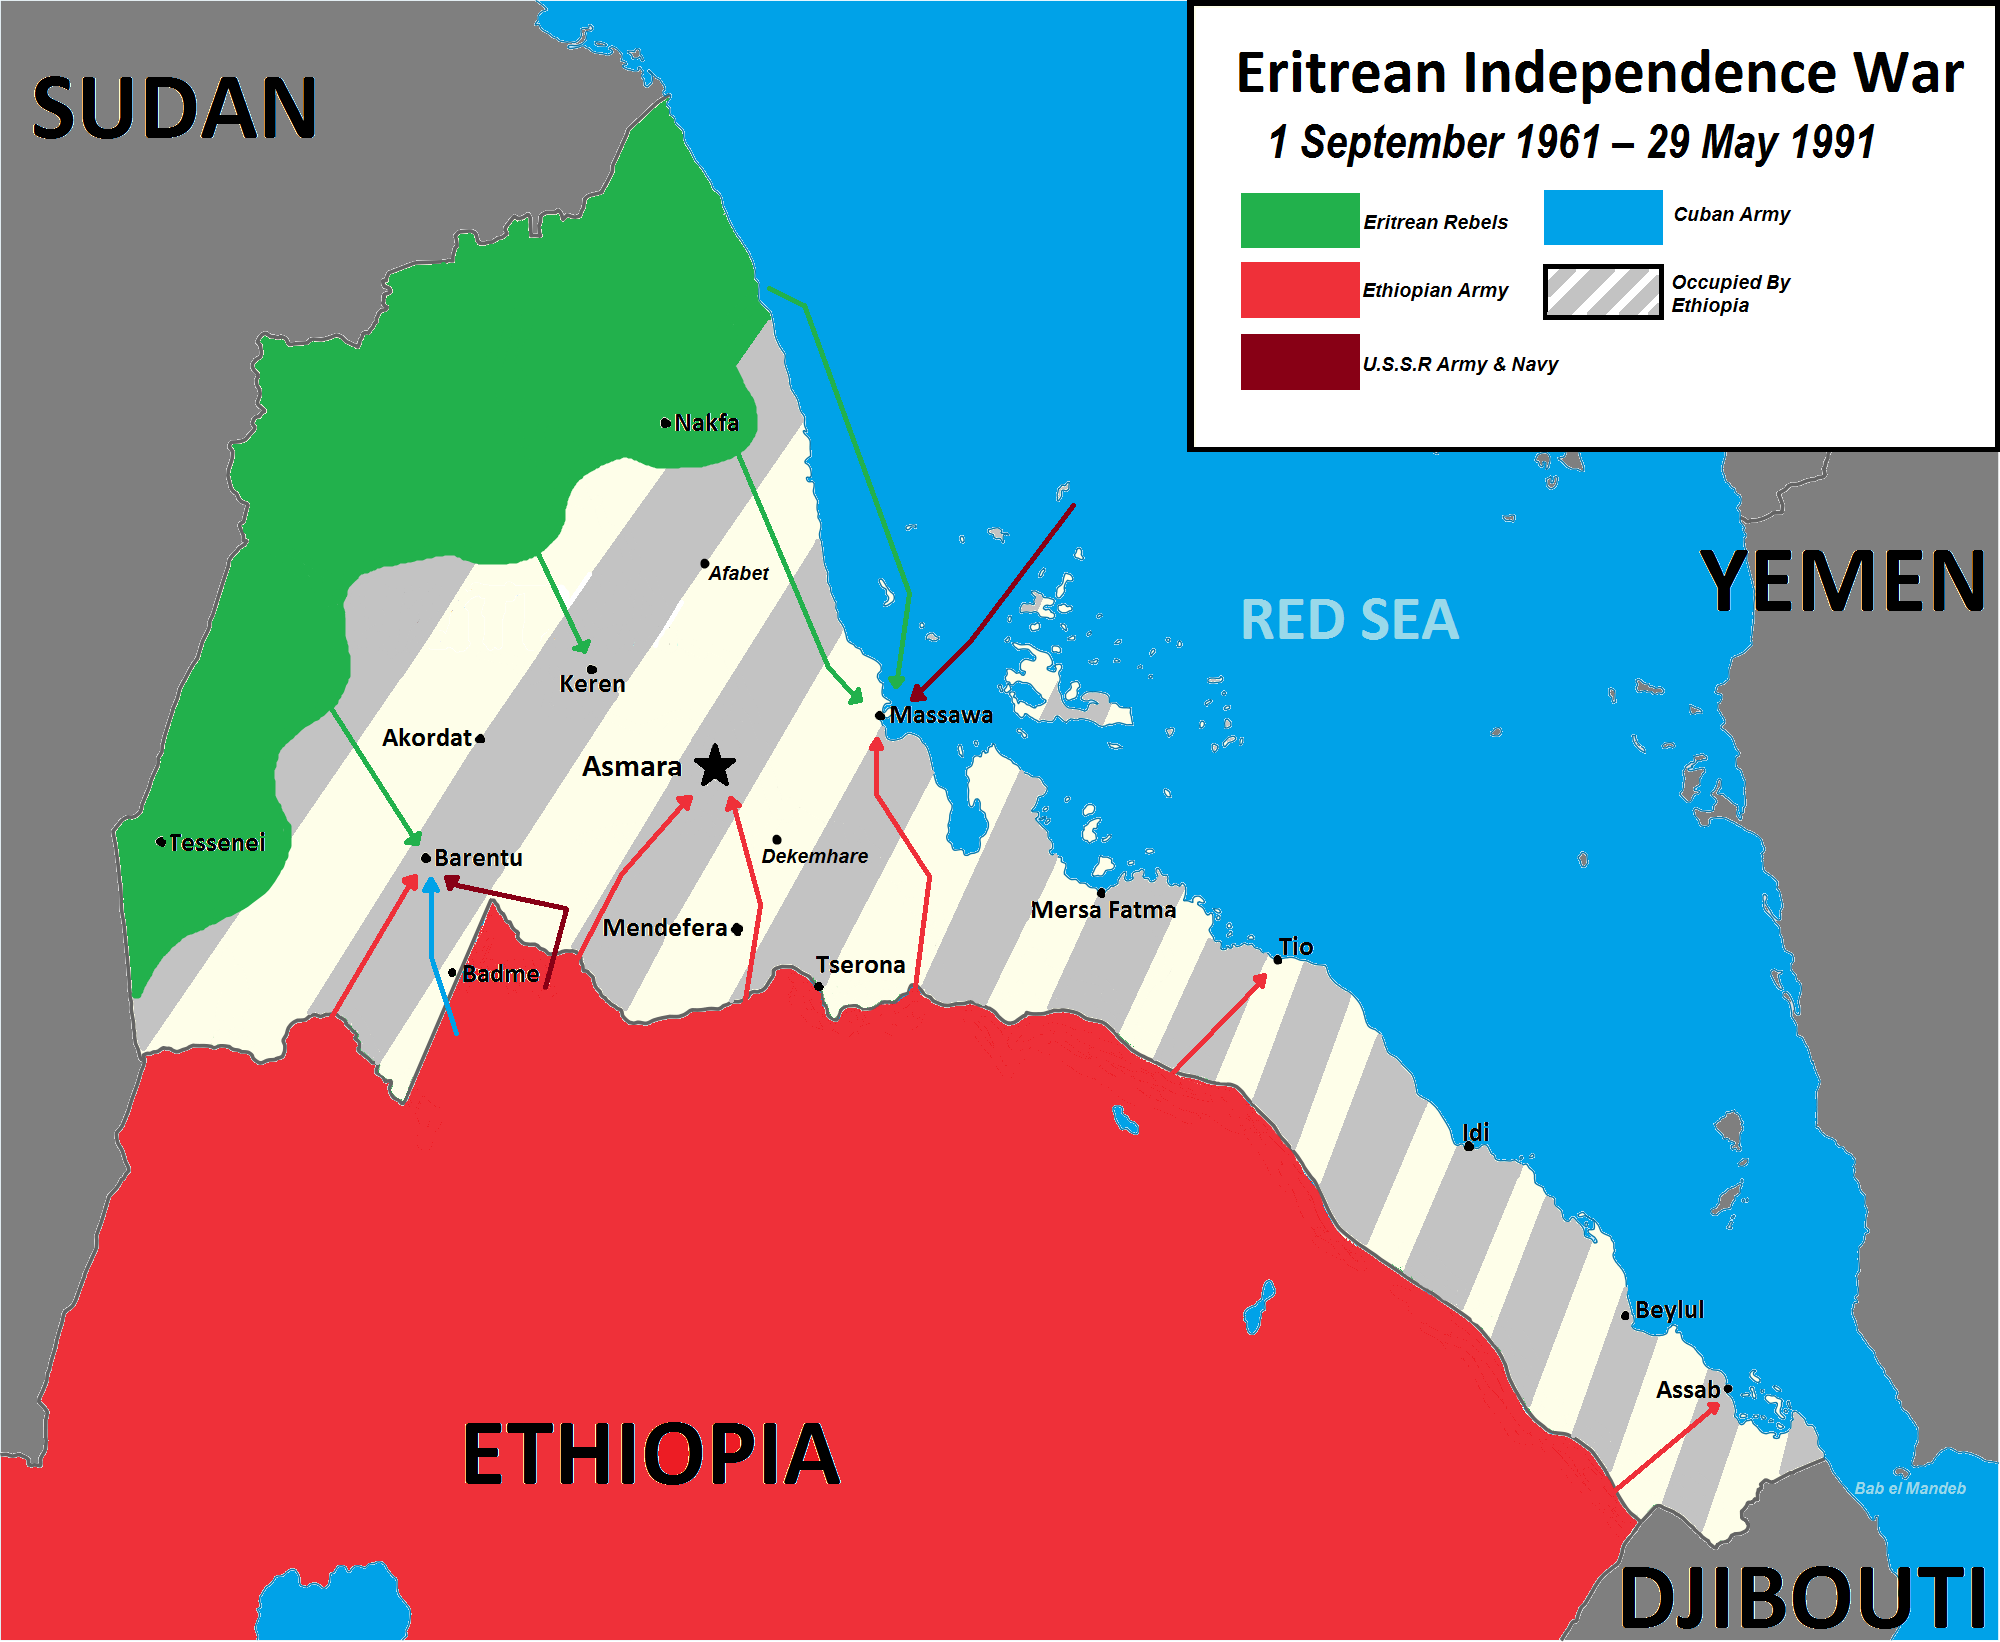 FileEritrean Independence War Mappng Wikimedia Commons